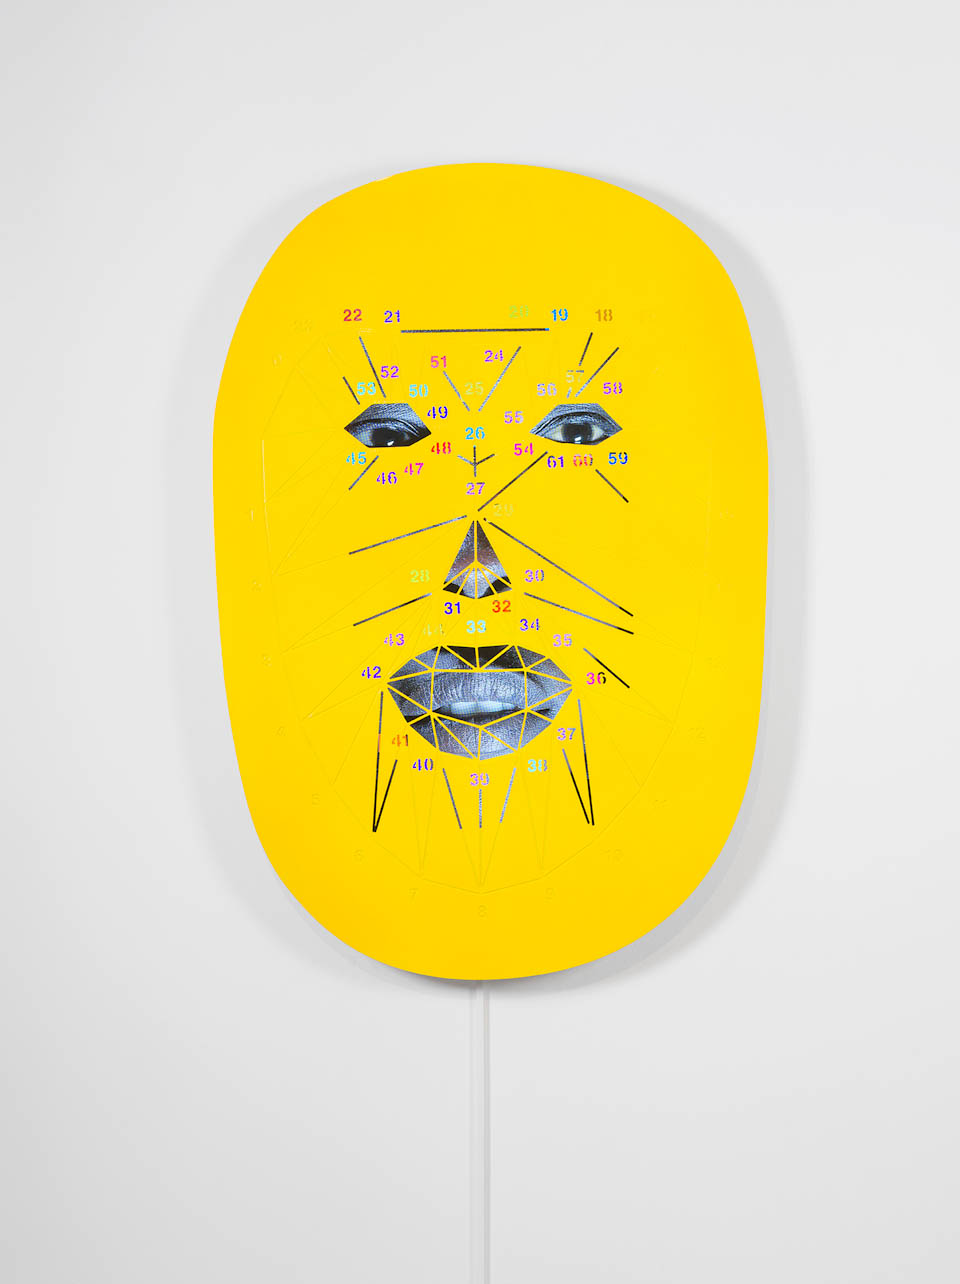 Tony_Oursler_2015_OUR_169_big.jpg